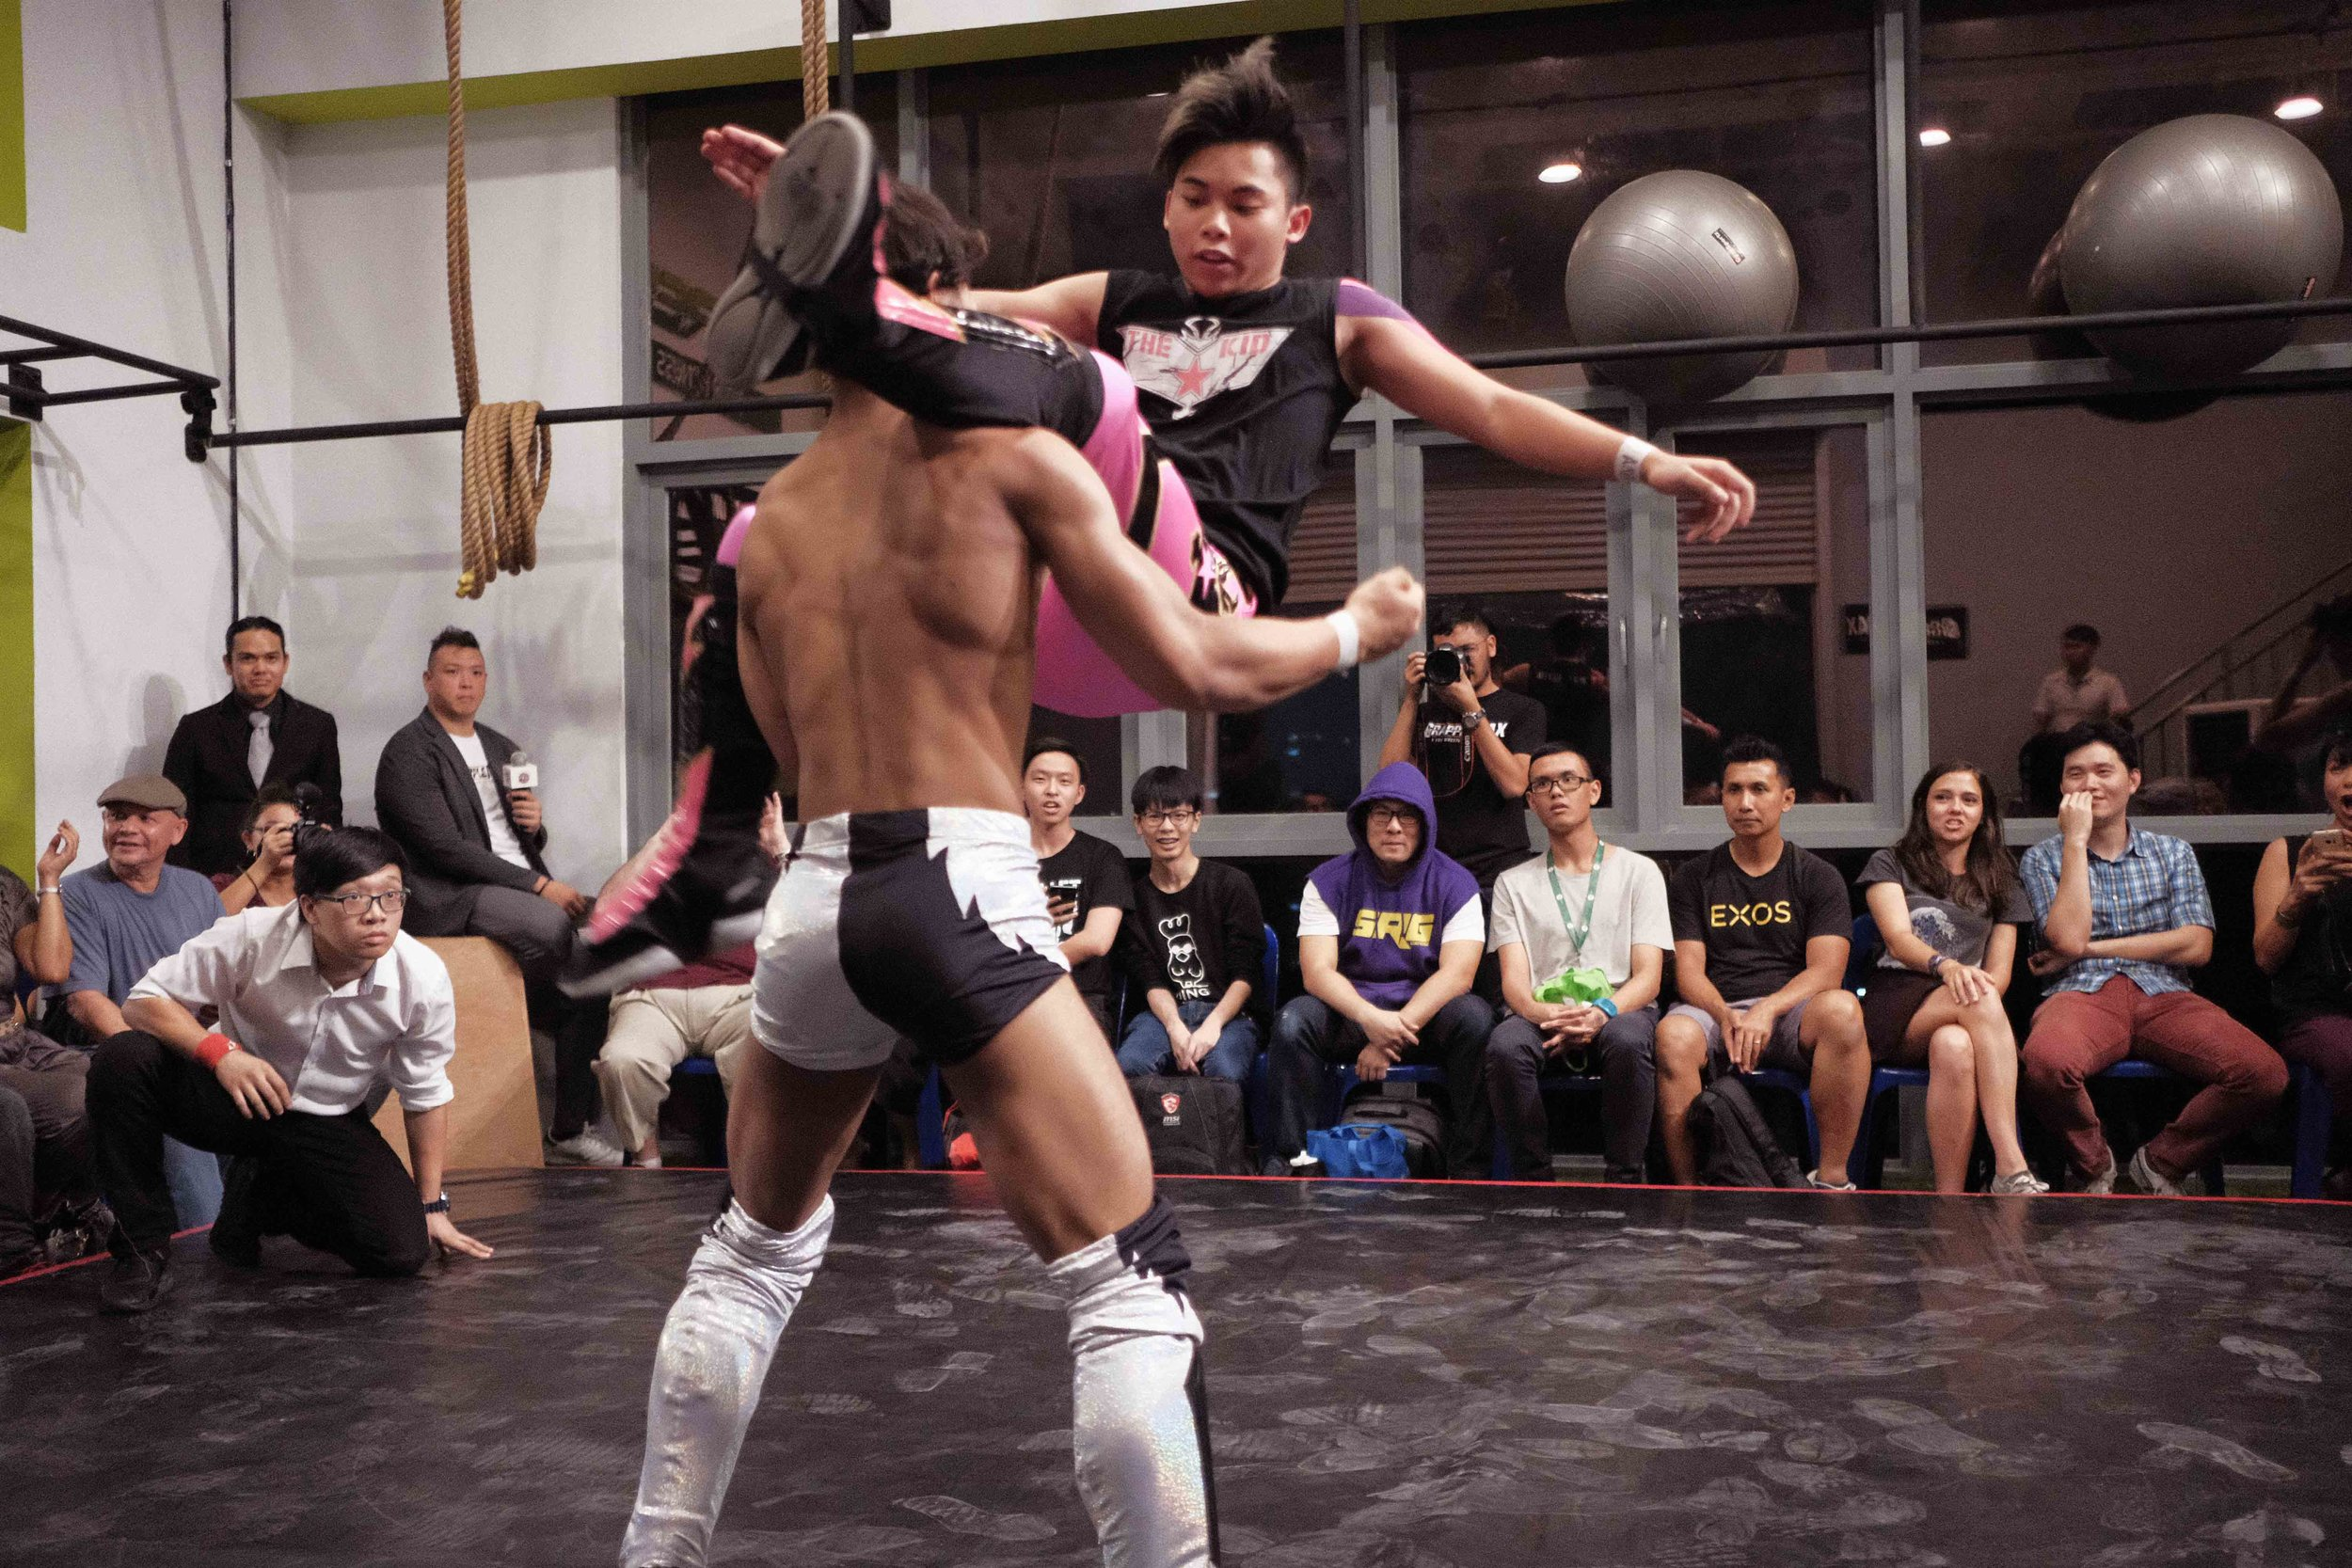 Photo: Marc Nair - Causeway Jam, 16 March 2018, Grapple MAX dojo